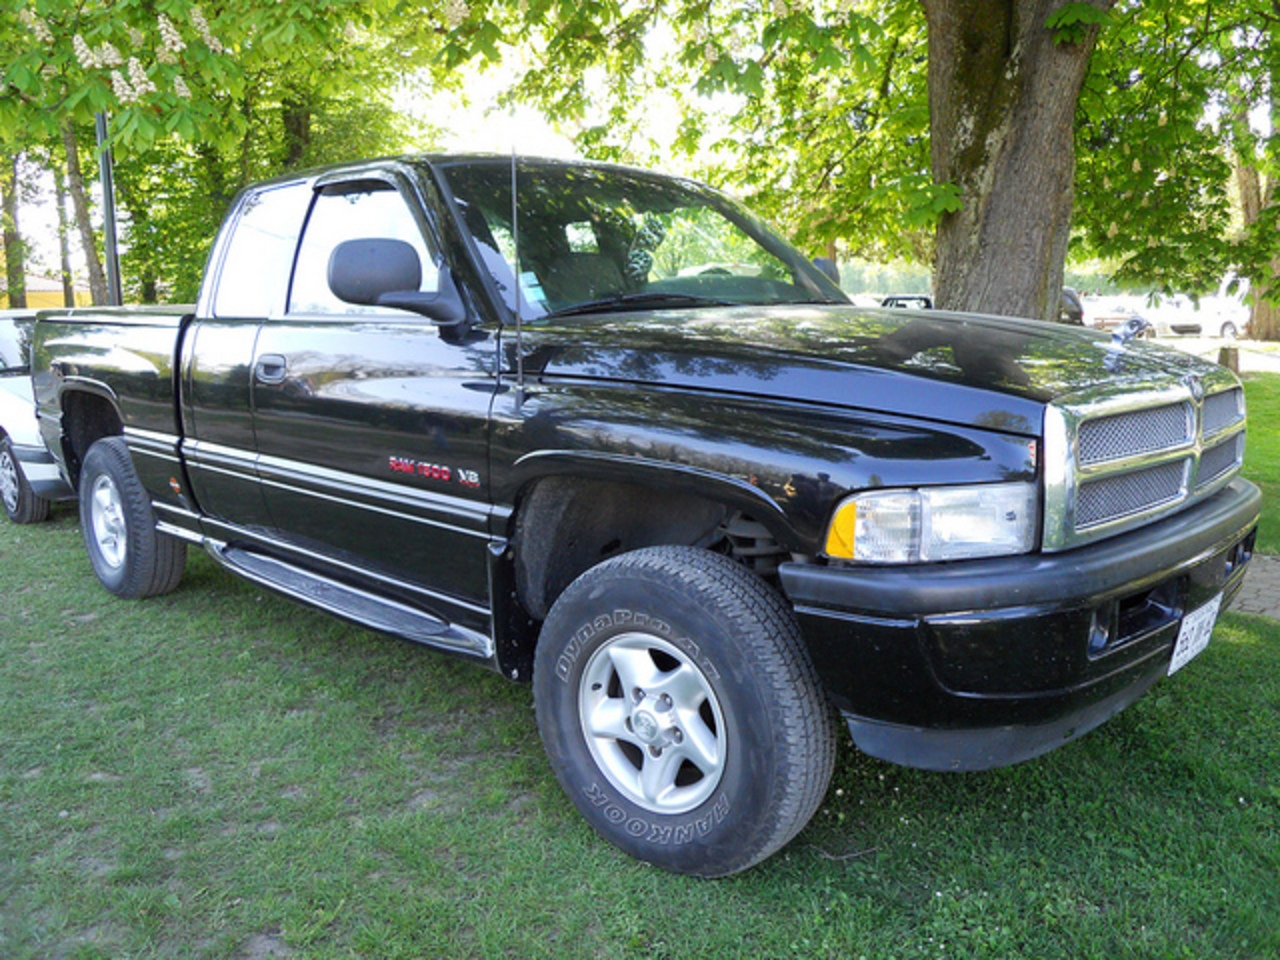 topworldauto photos of dodge ram 1500 v6 photo galleries. Black Bedroom Furniture Sets. Home Design Ideas